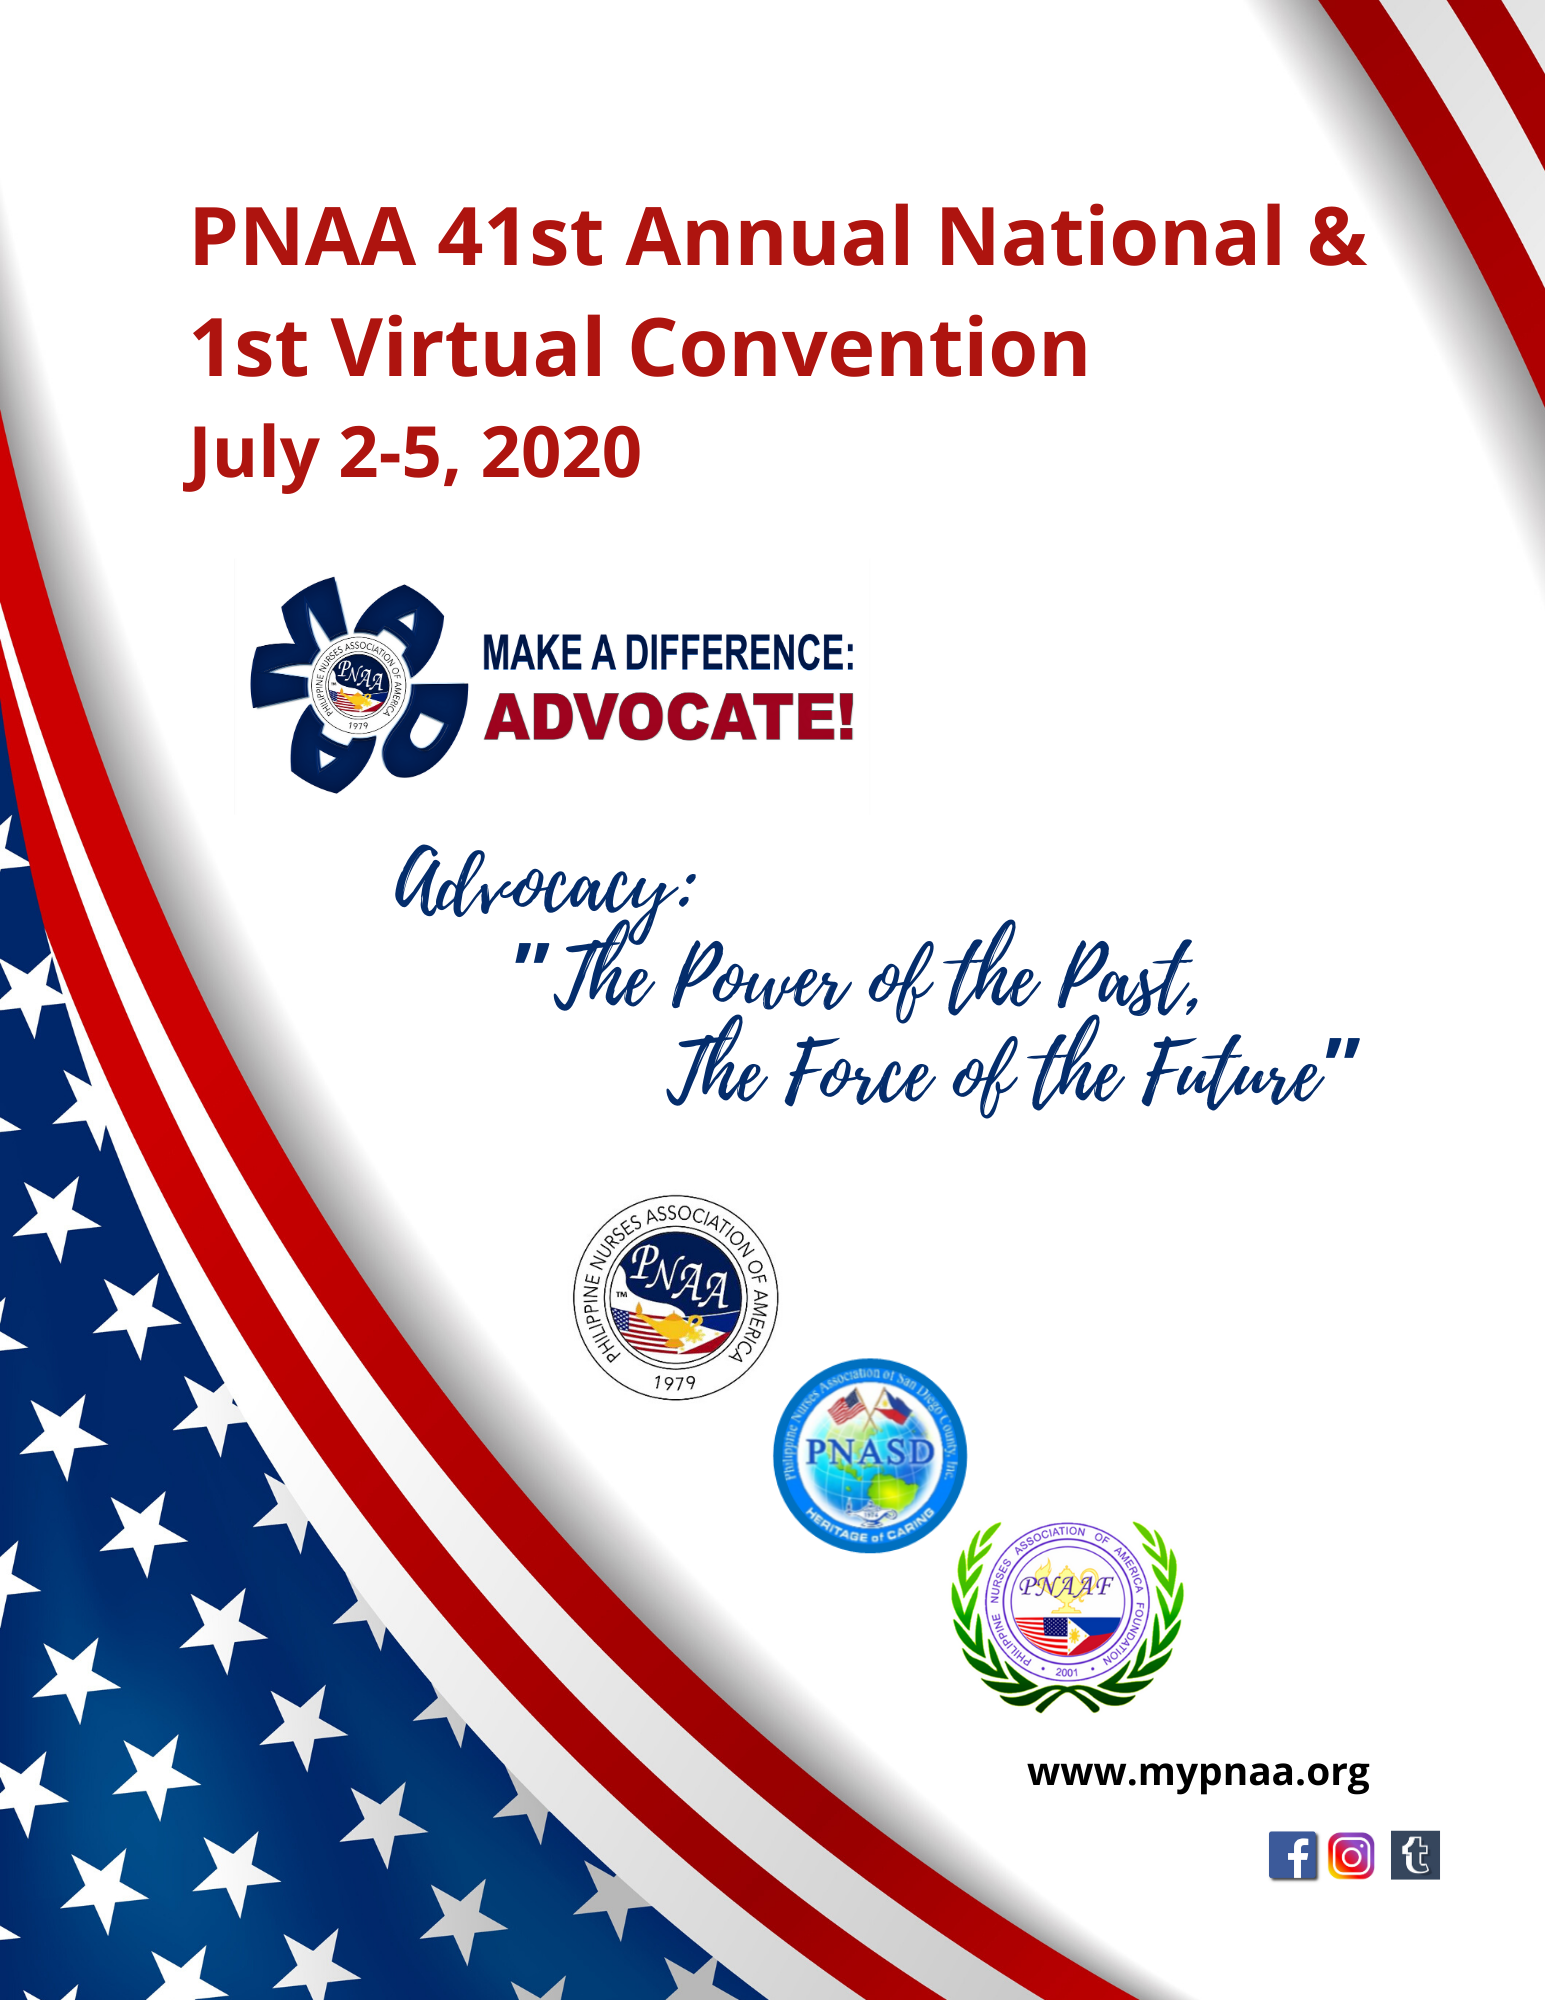 PNAA 41st Virtual Convention